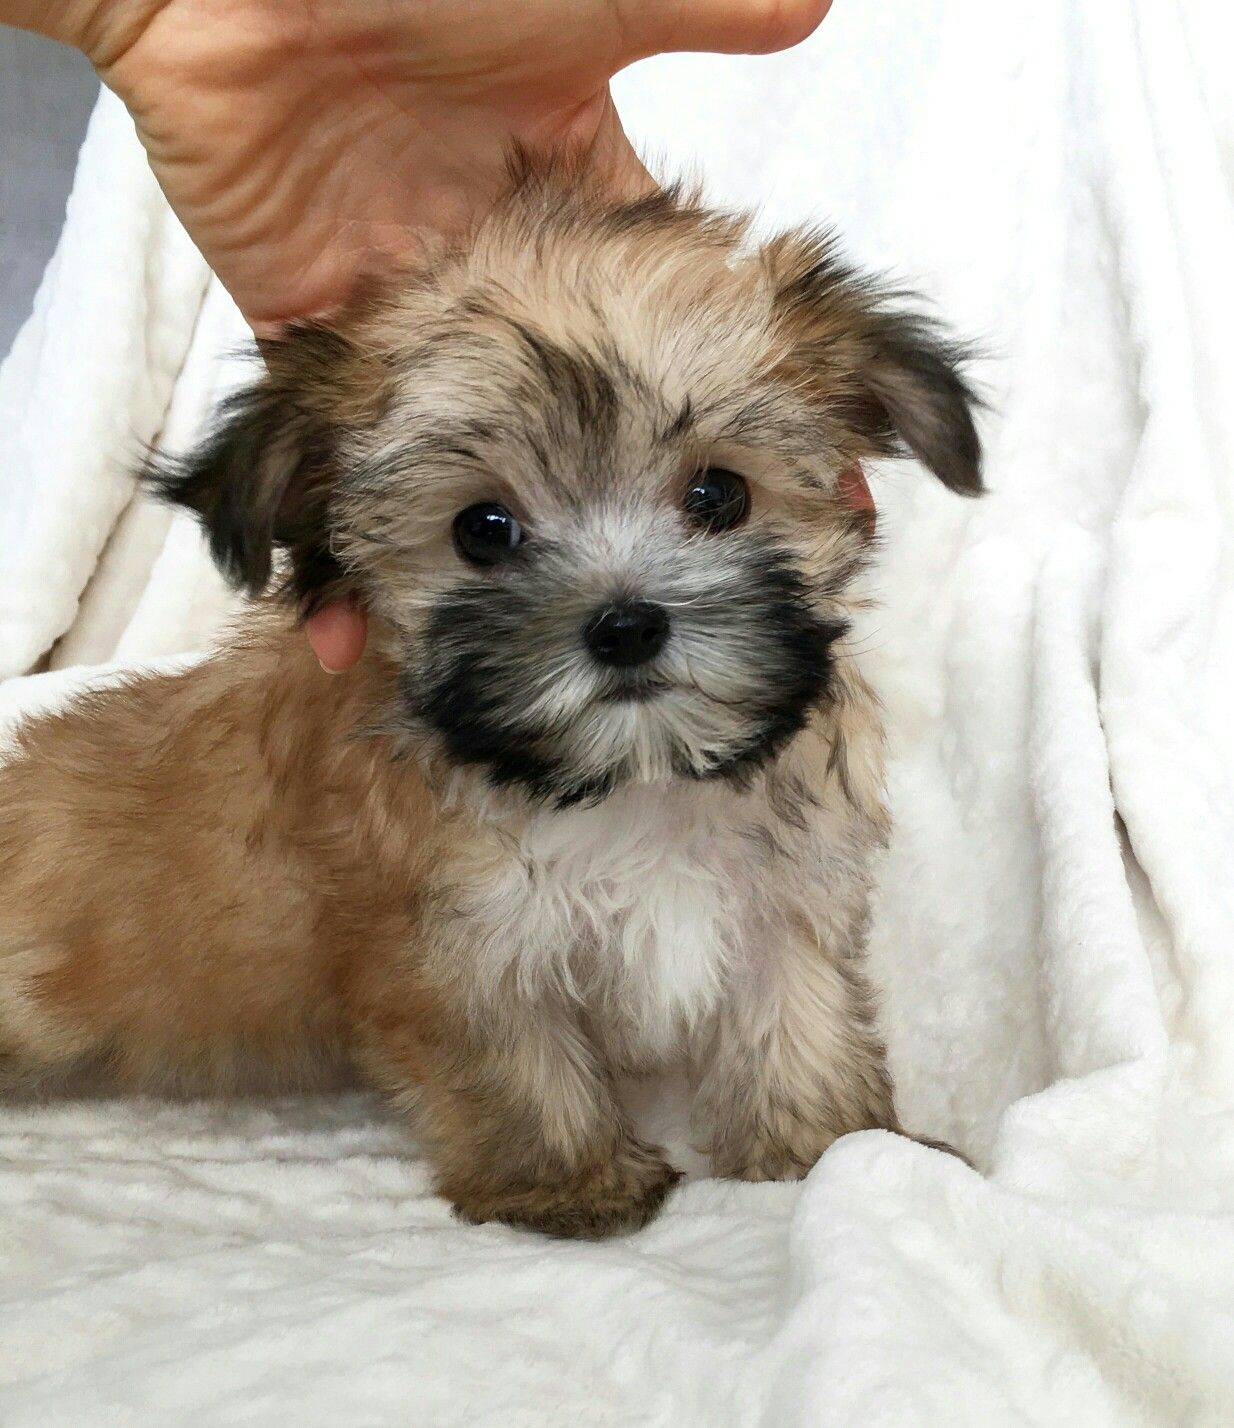 Morkie Maltese puppies for sale, Puppies for sale